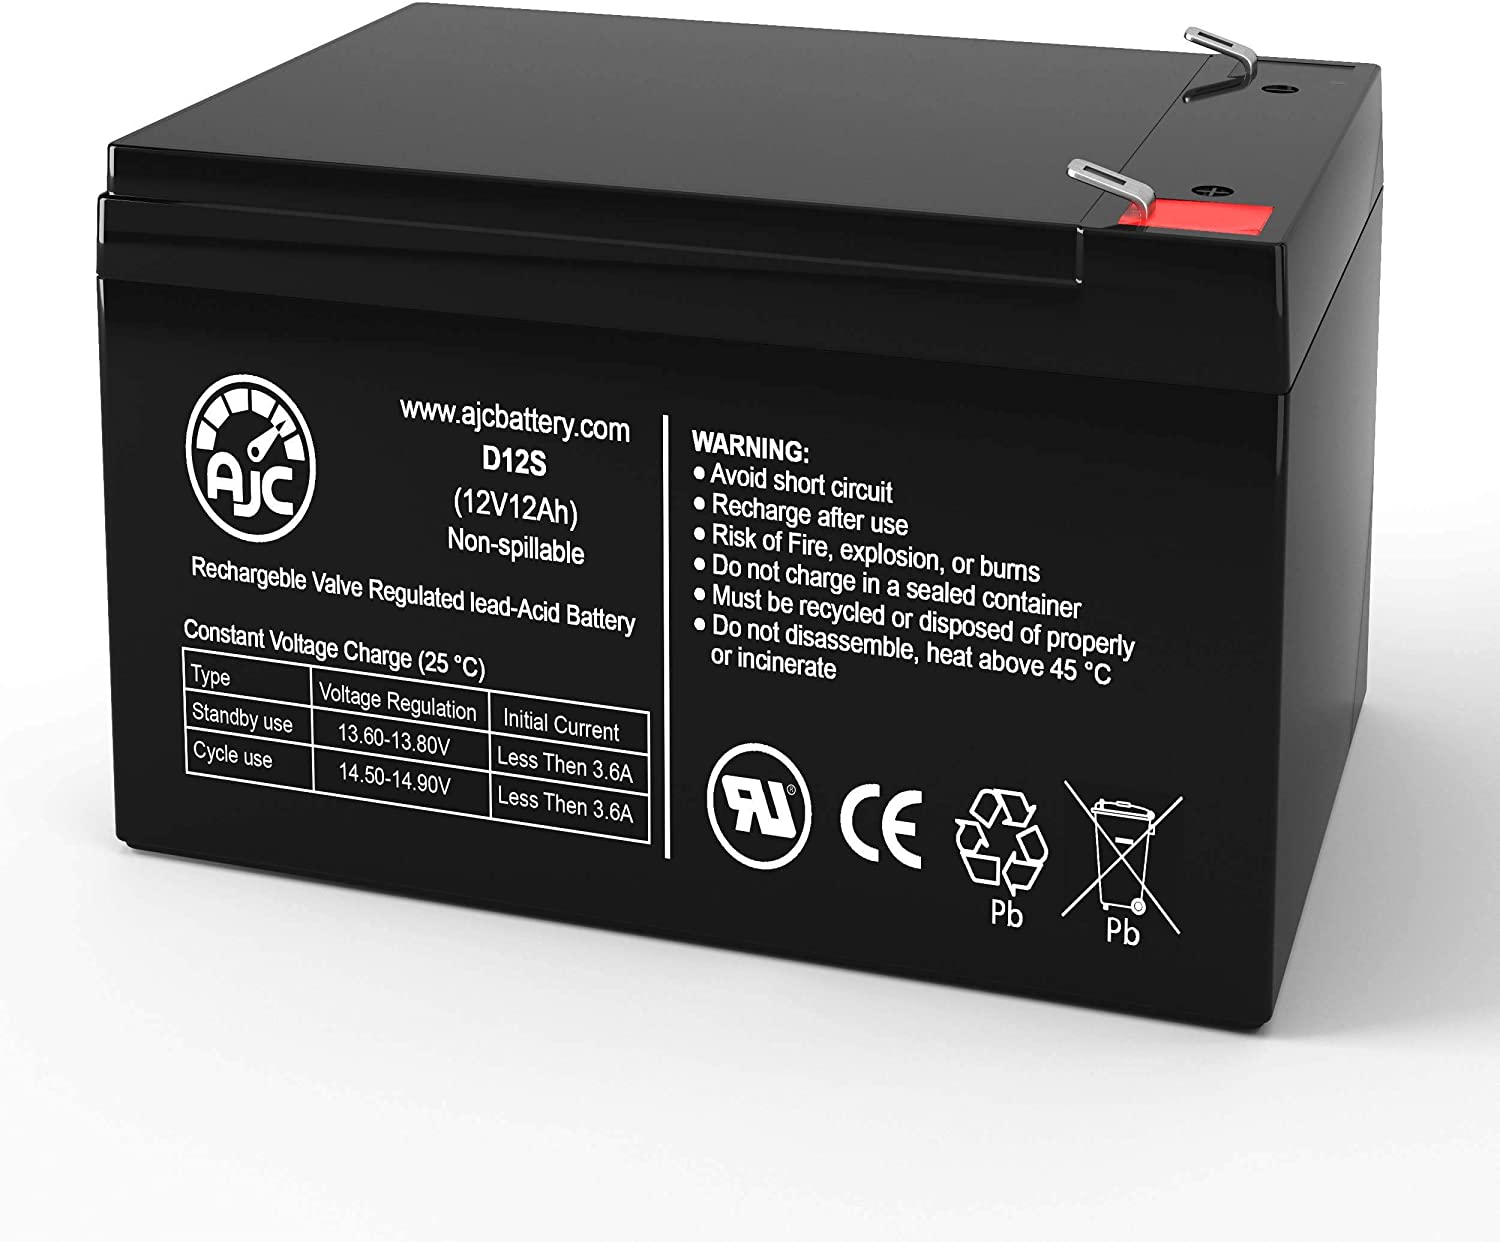 Remco RM12-12 12V 12Ah Sealed Lead Acid Battery - This is an AJC Brand Replacement